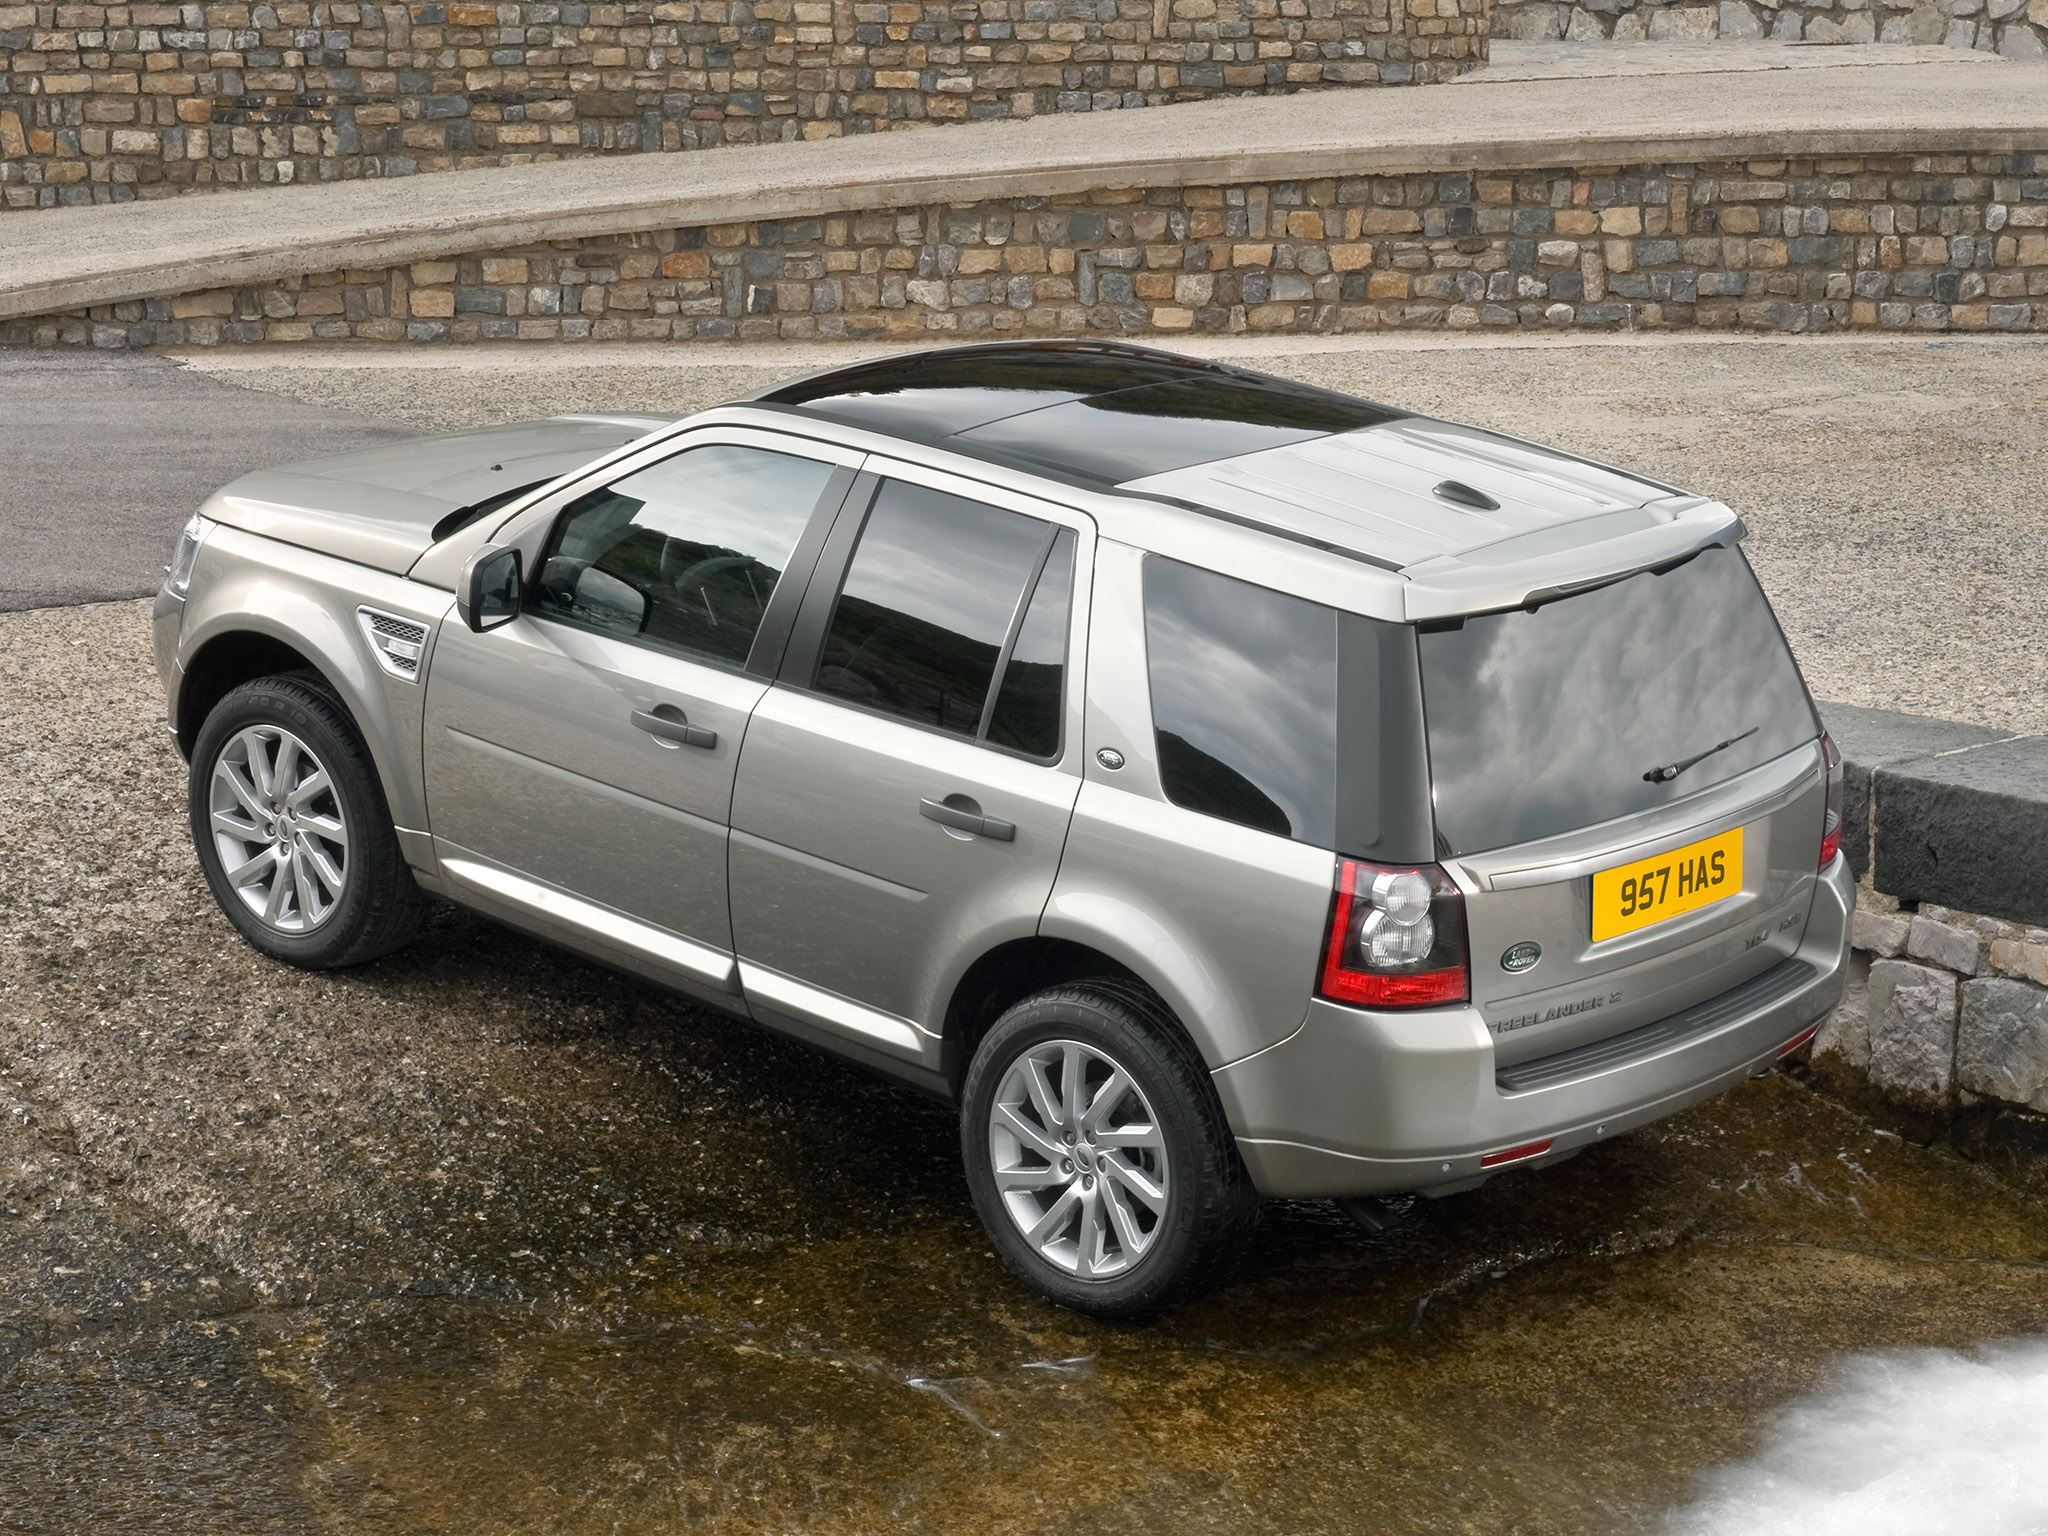 land rover freelander 2 2010 land rover freelander 2 2010 photo 14 car in pictures car photo. Black Bedroom Furniture Sets. Home Design Ideas